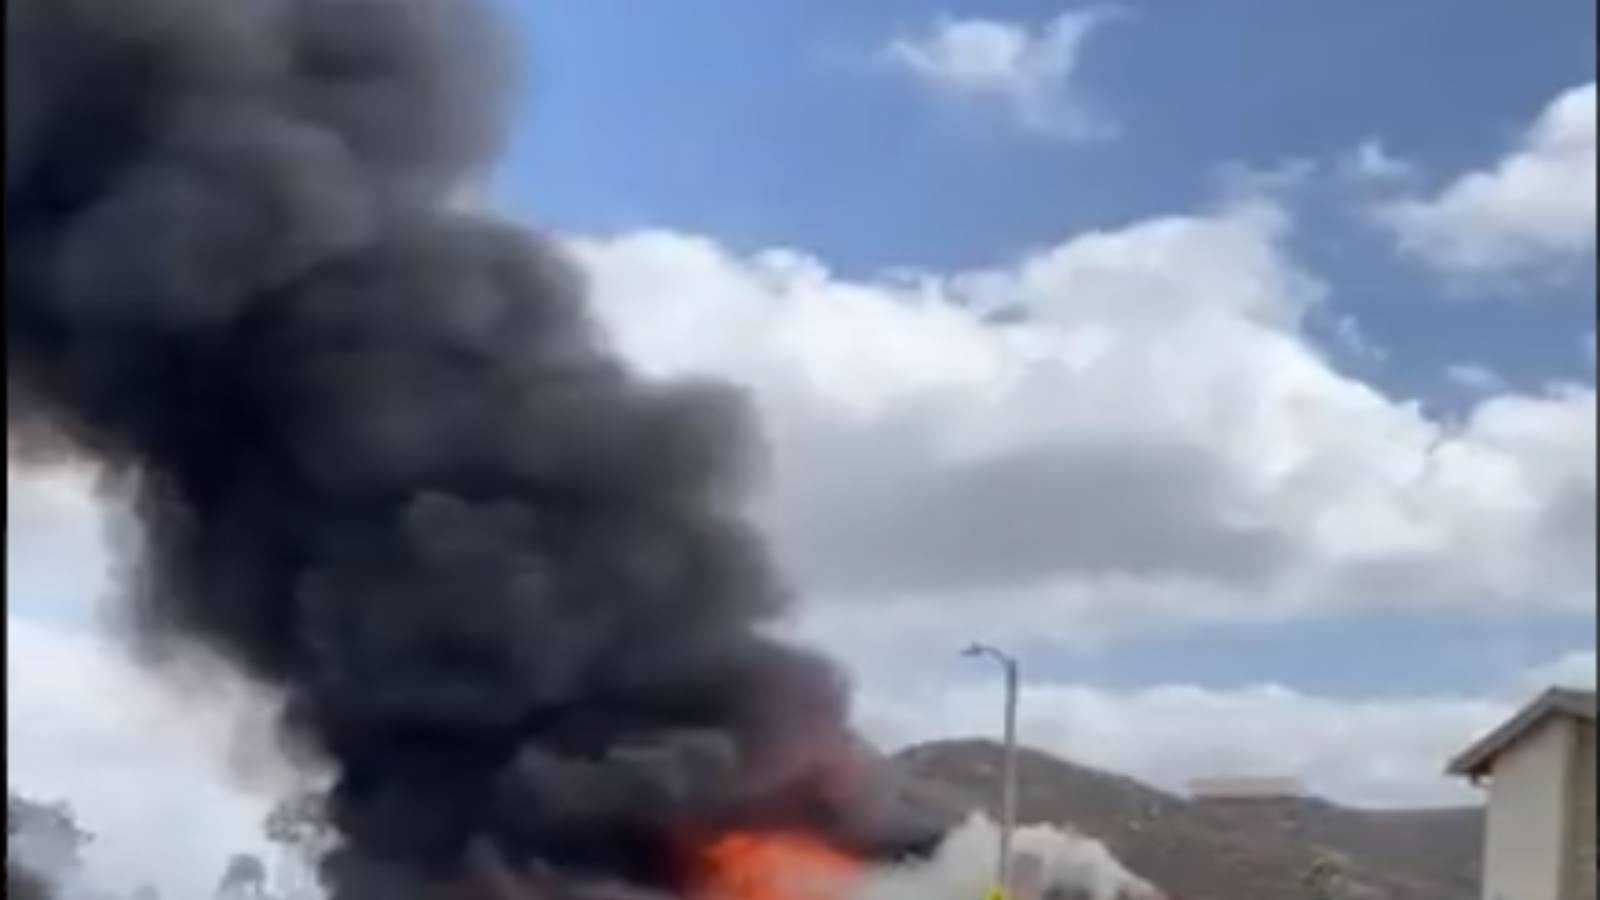 Plane crashes into homes killing and injuring people in california video gone viral pratp